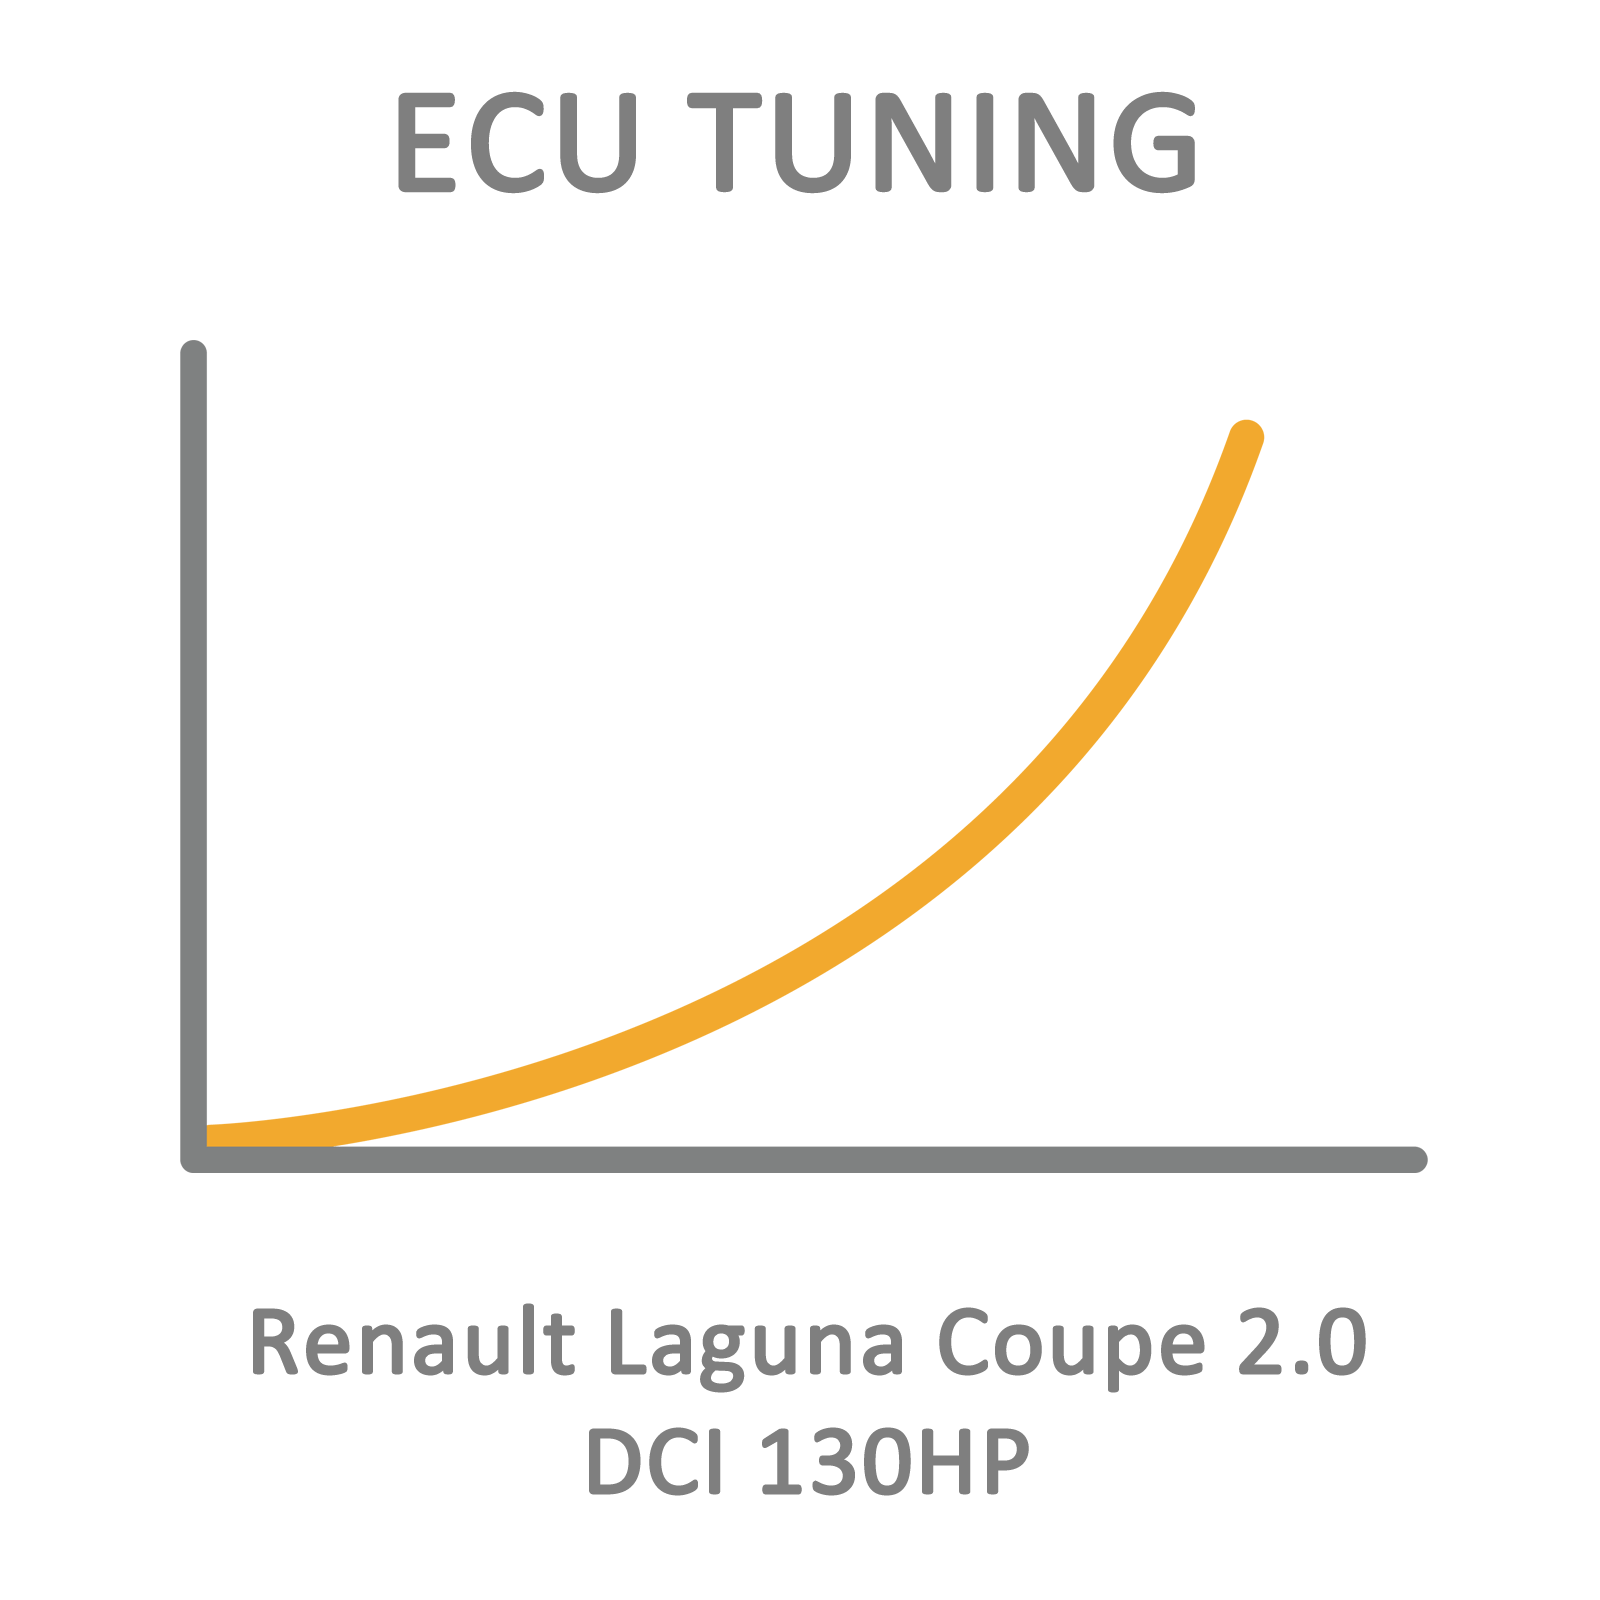 Renault Laguna Coupe 2.0 DCI 130HP ECU Tuning Remapping